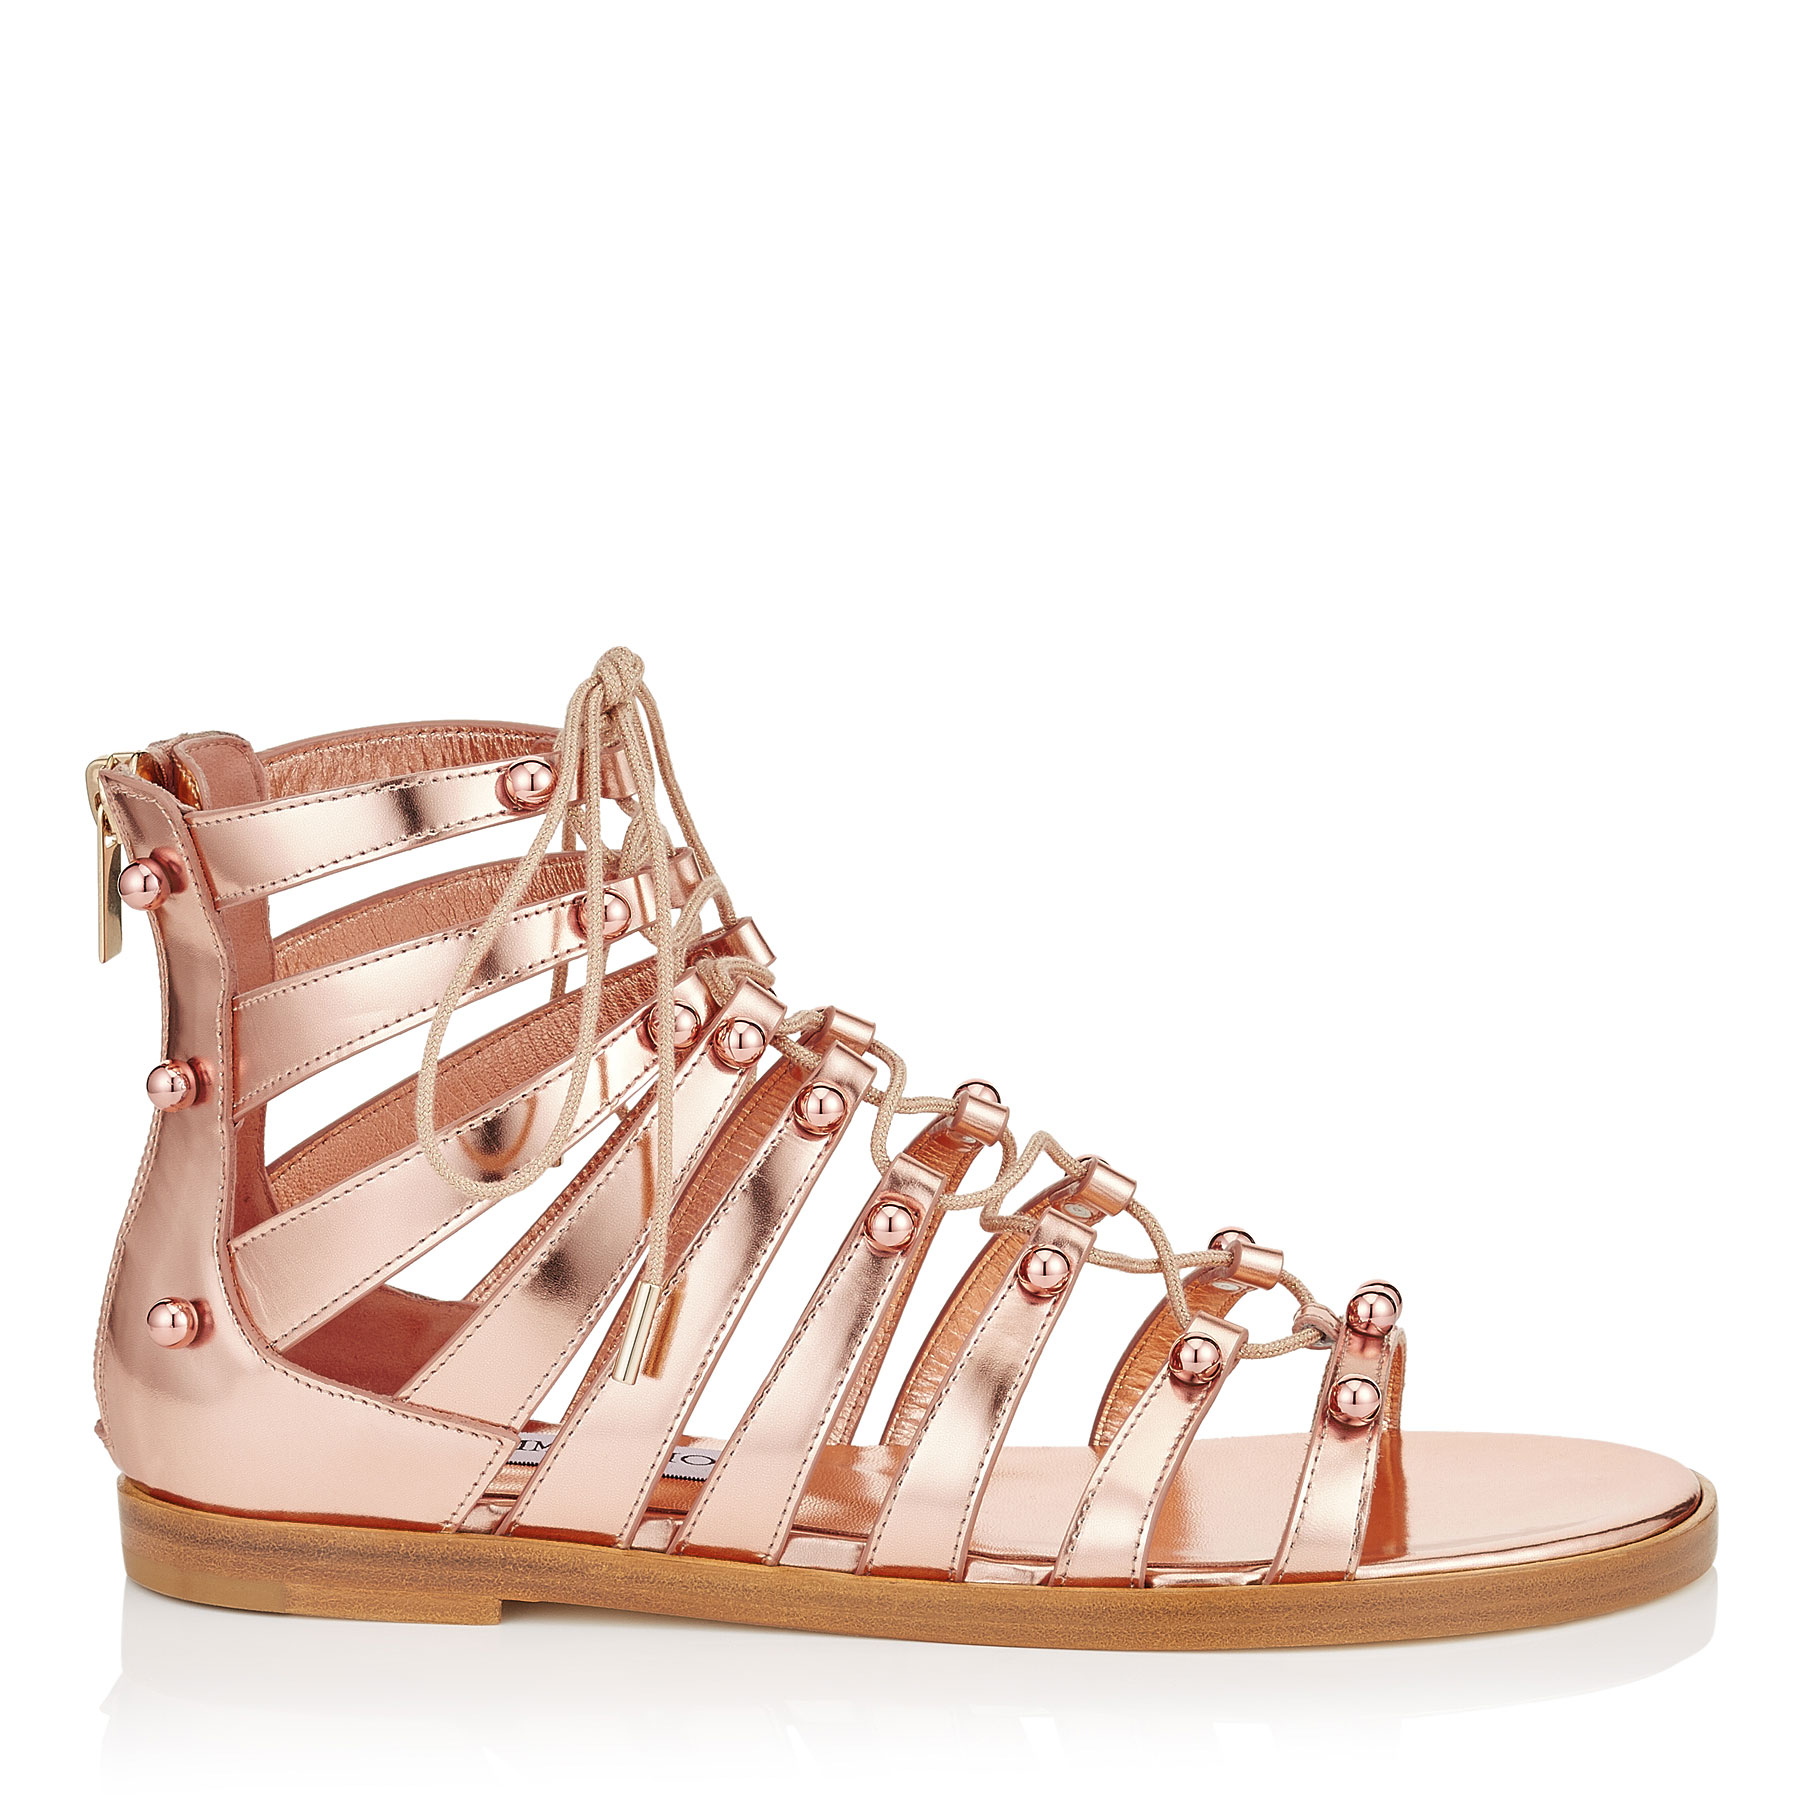 GIGI FLAT Tea Rose Mirror Leather Sandals with Beads by Jimmy Choo